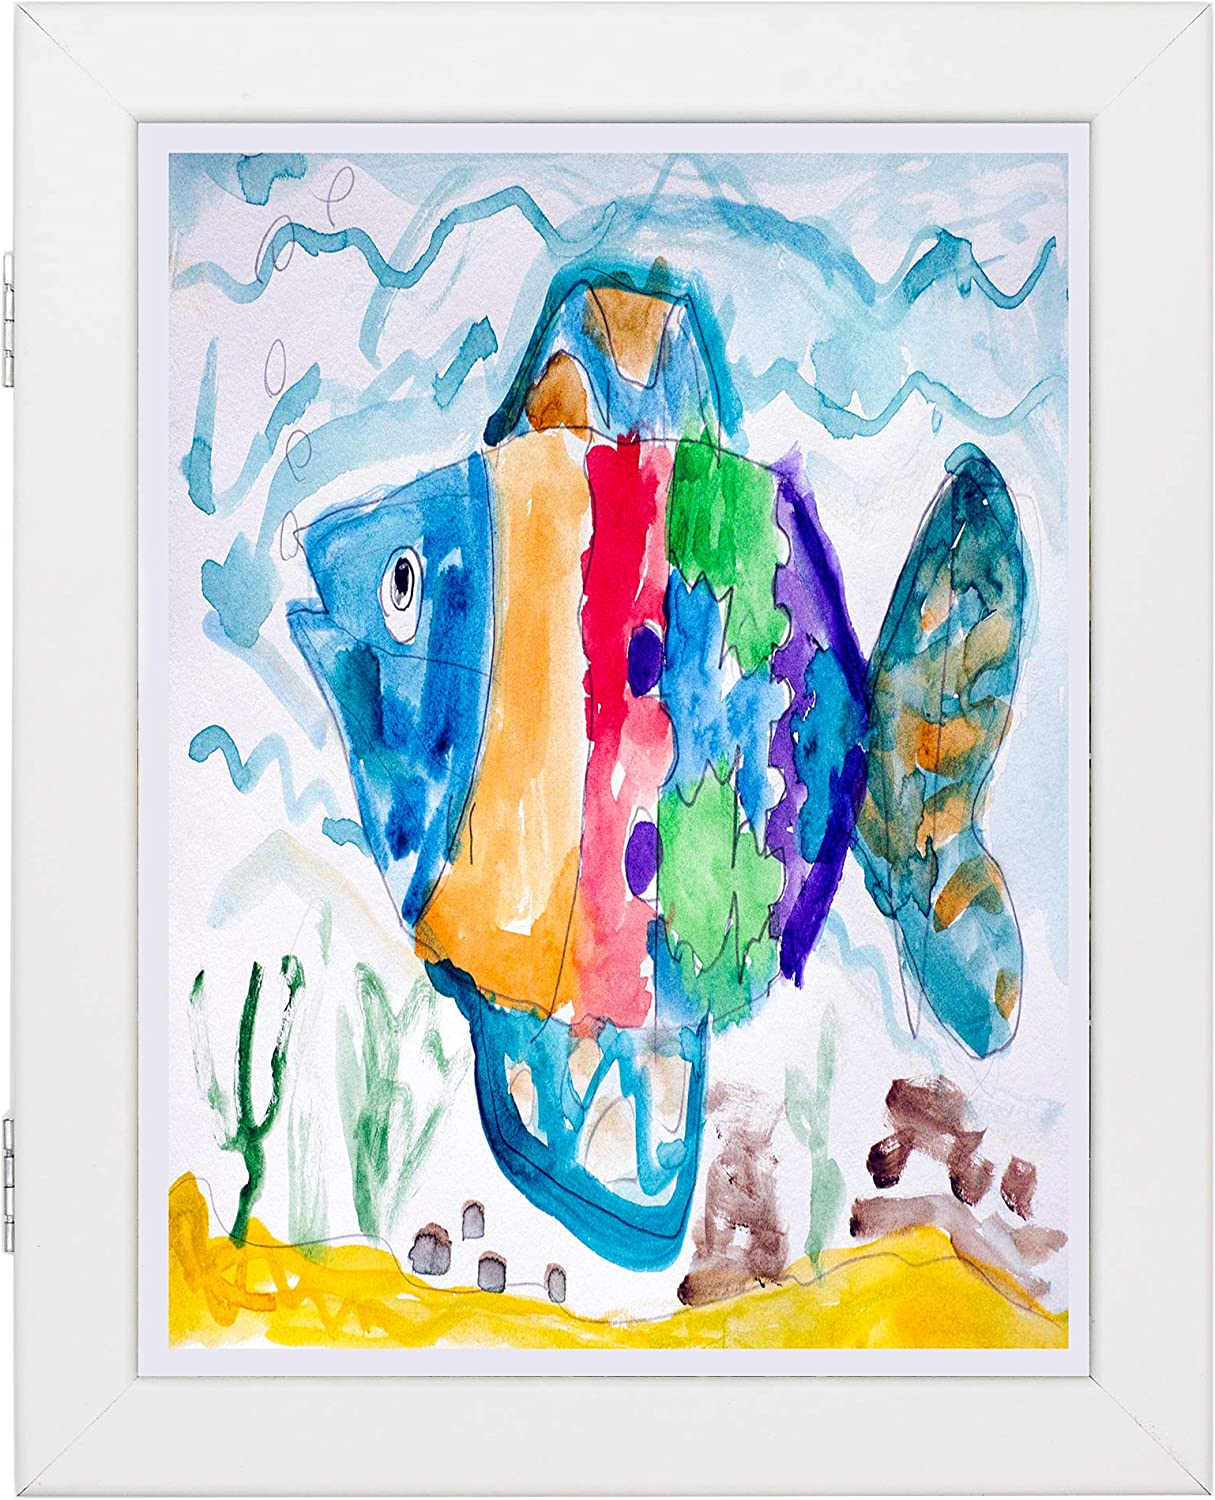 Wall and Tabletop Display Home or Office 8.5x11 White Art Frames Children Art Projects Set of 2 Schoolwork Front Opening for Easy Showcase Great for Kids Drawings and Artworks